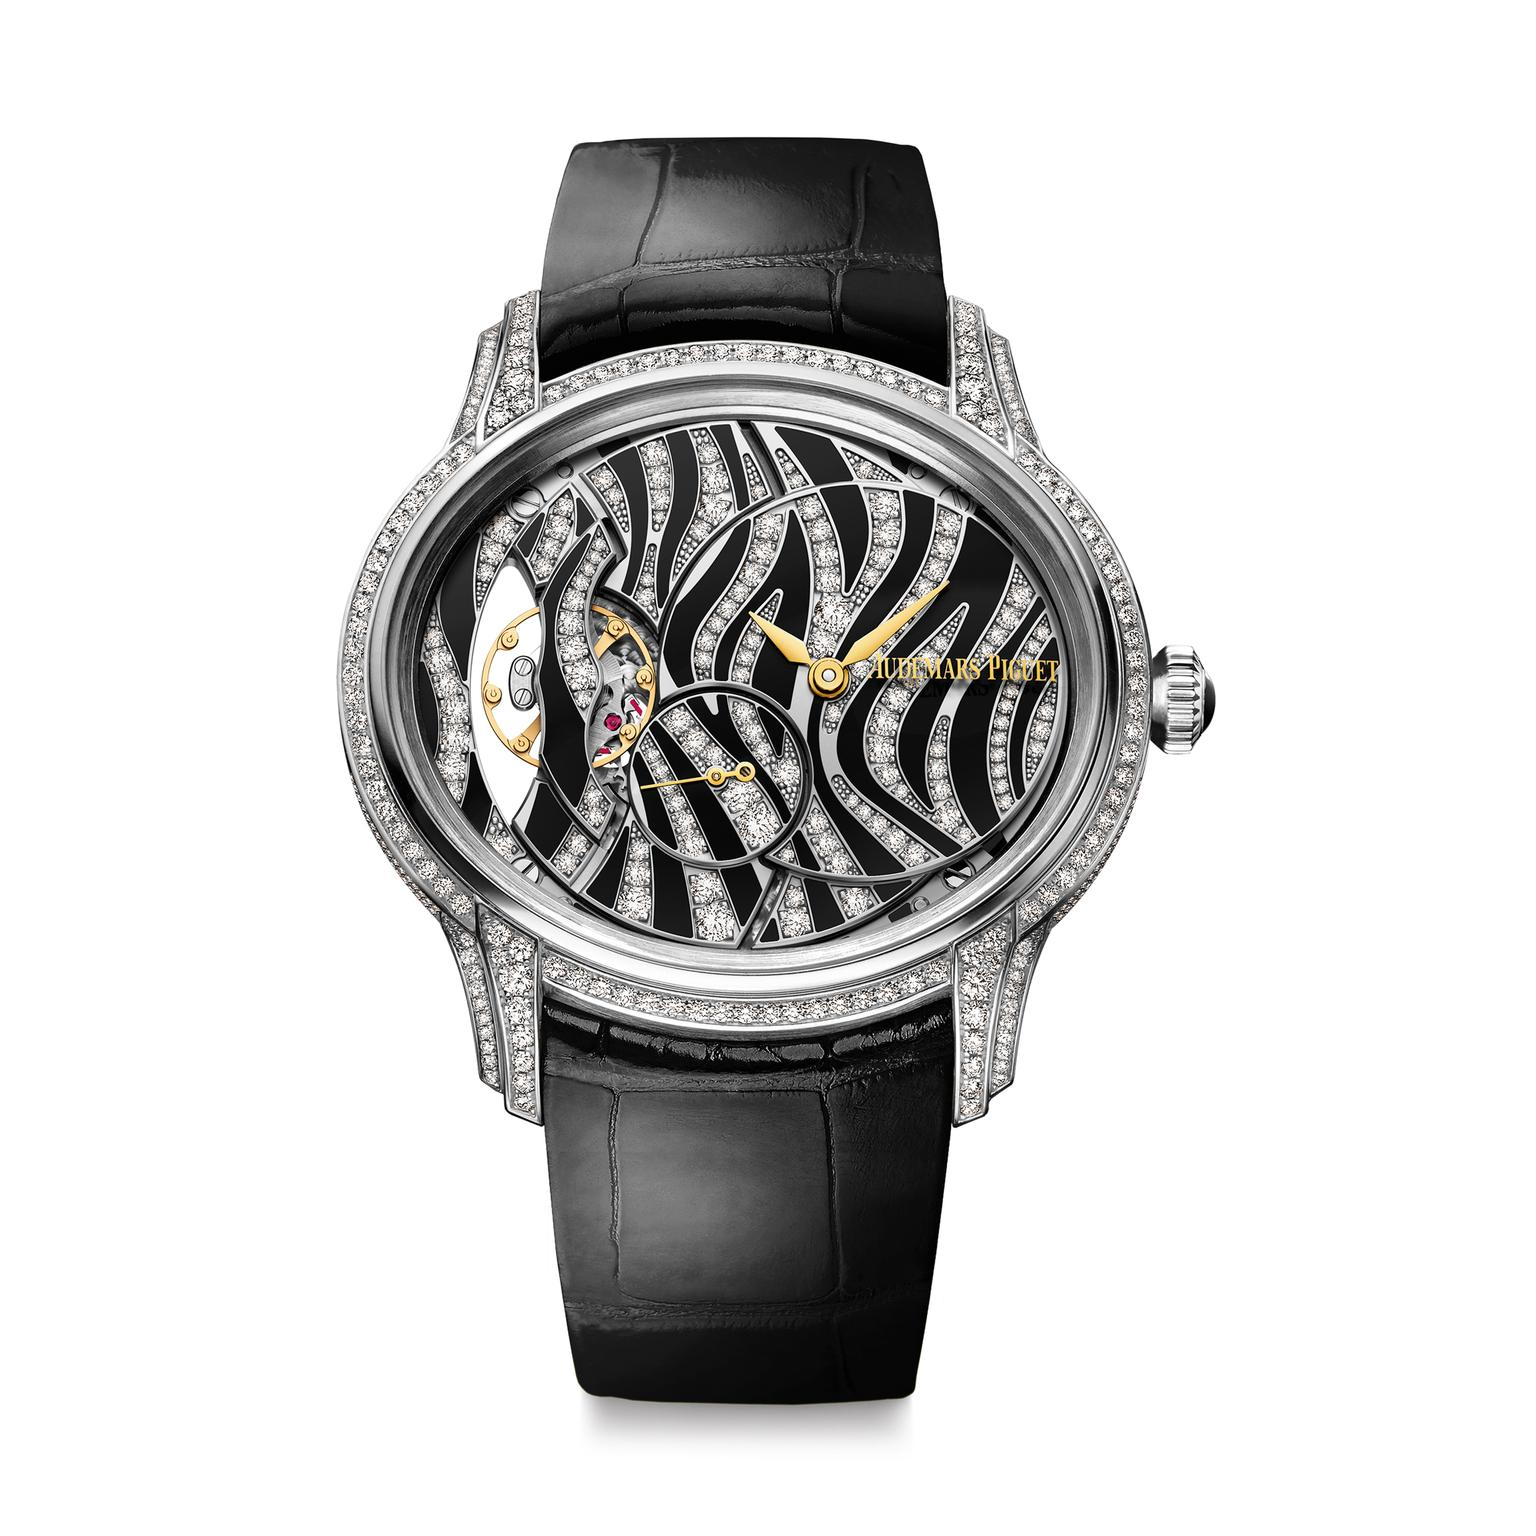 Audemars Piguet Millenary zebra watch